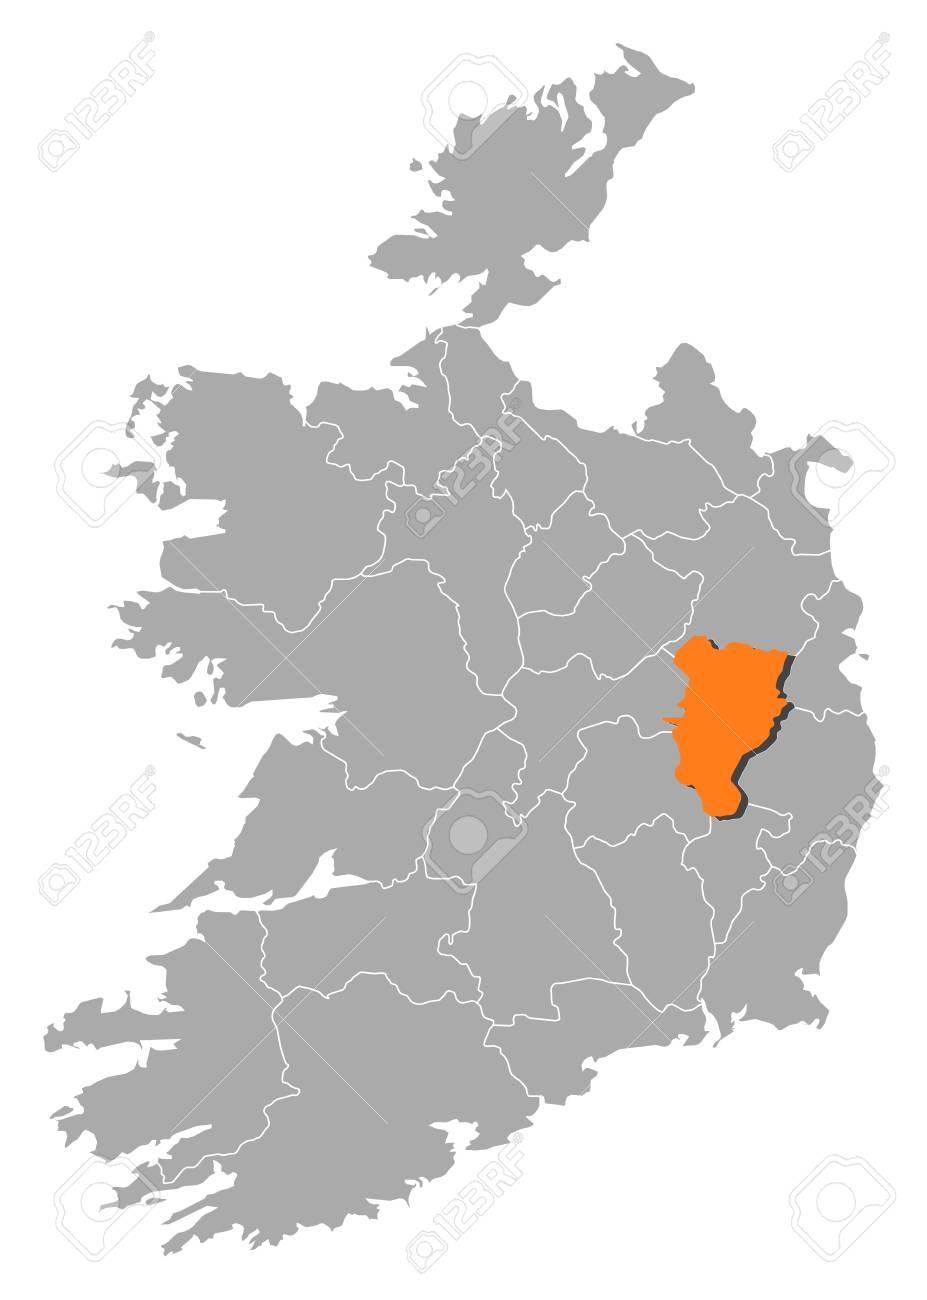 Map Of Ireland With The Provinces Kildare Is Highlighted By